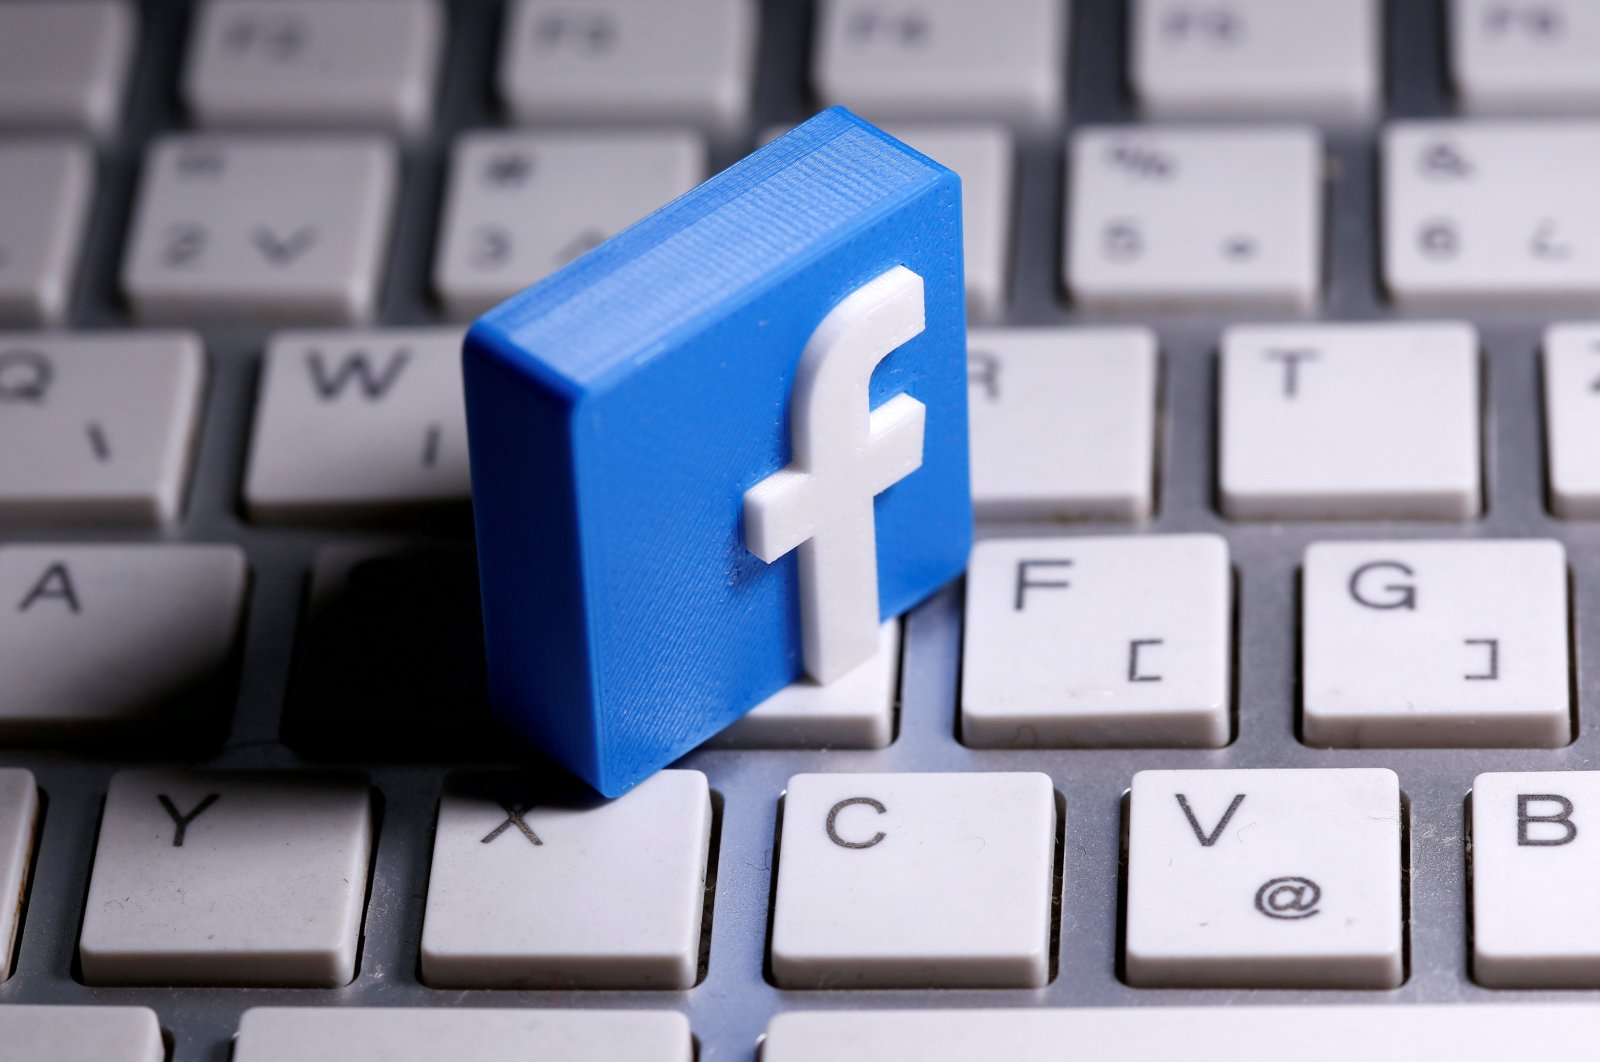 A 3D-printed Facebook logo is seen placed on a keyboard in this illustration taken March 25, 2020. (Reuters Photo)